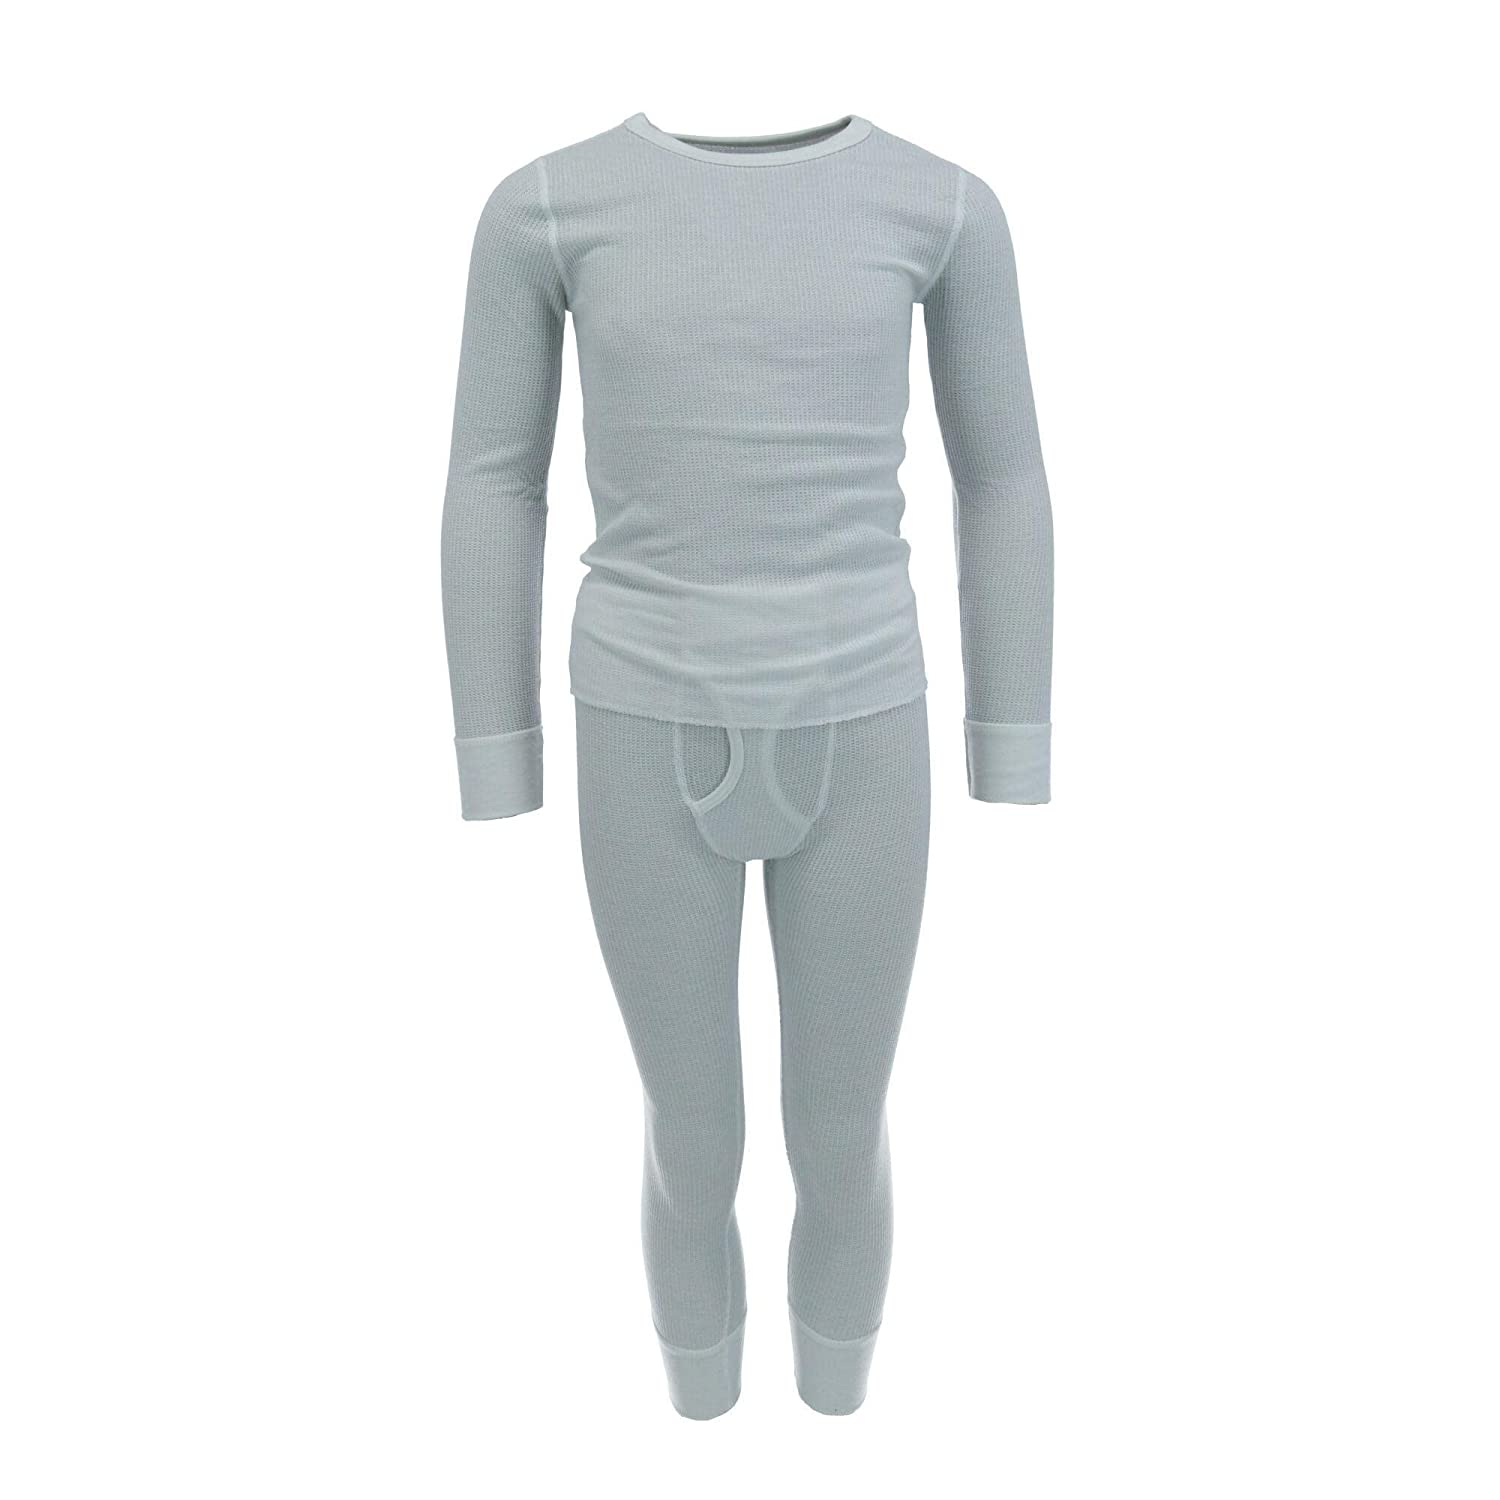 Fruit of the Loom Boys Waffle Knit Insulated Top and Bottom Long Underwear